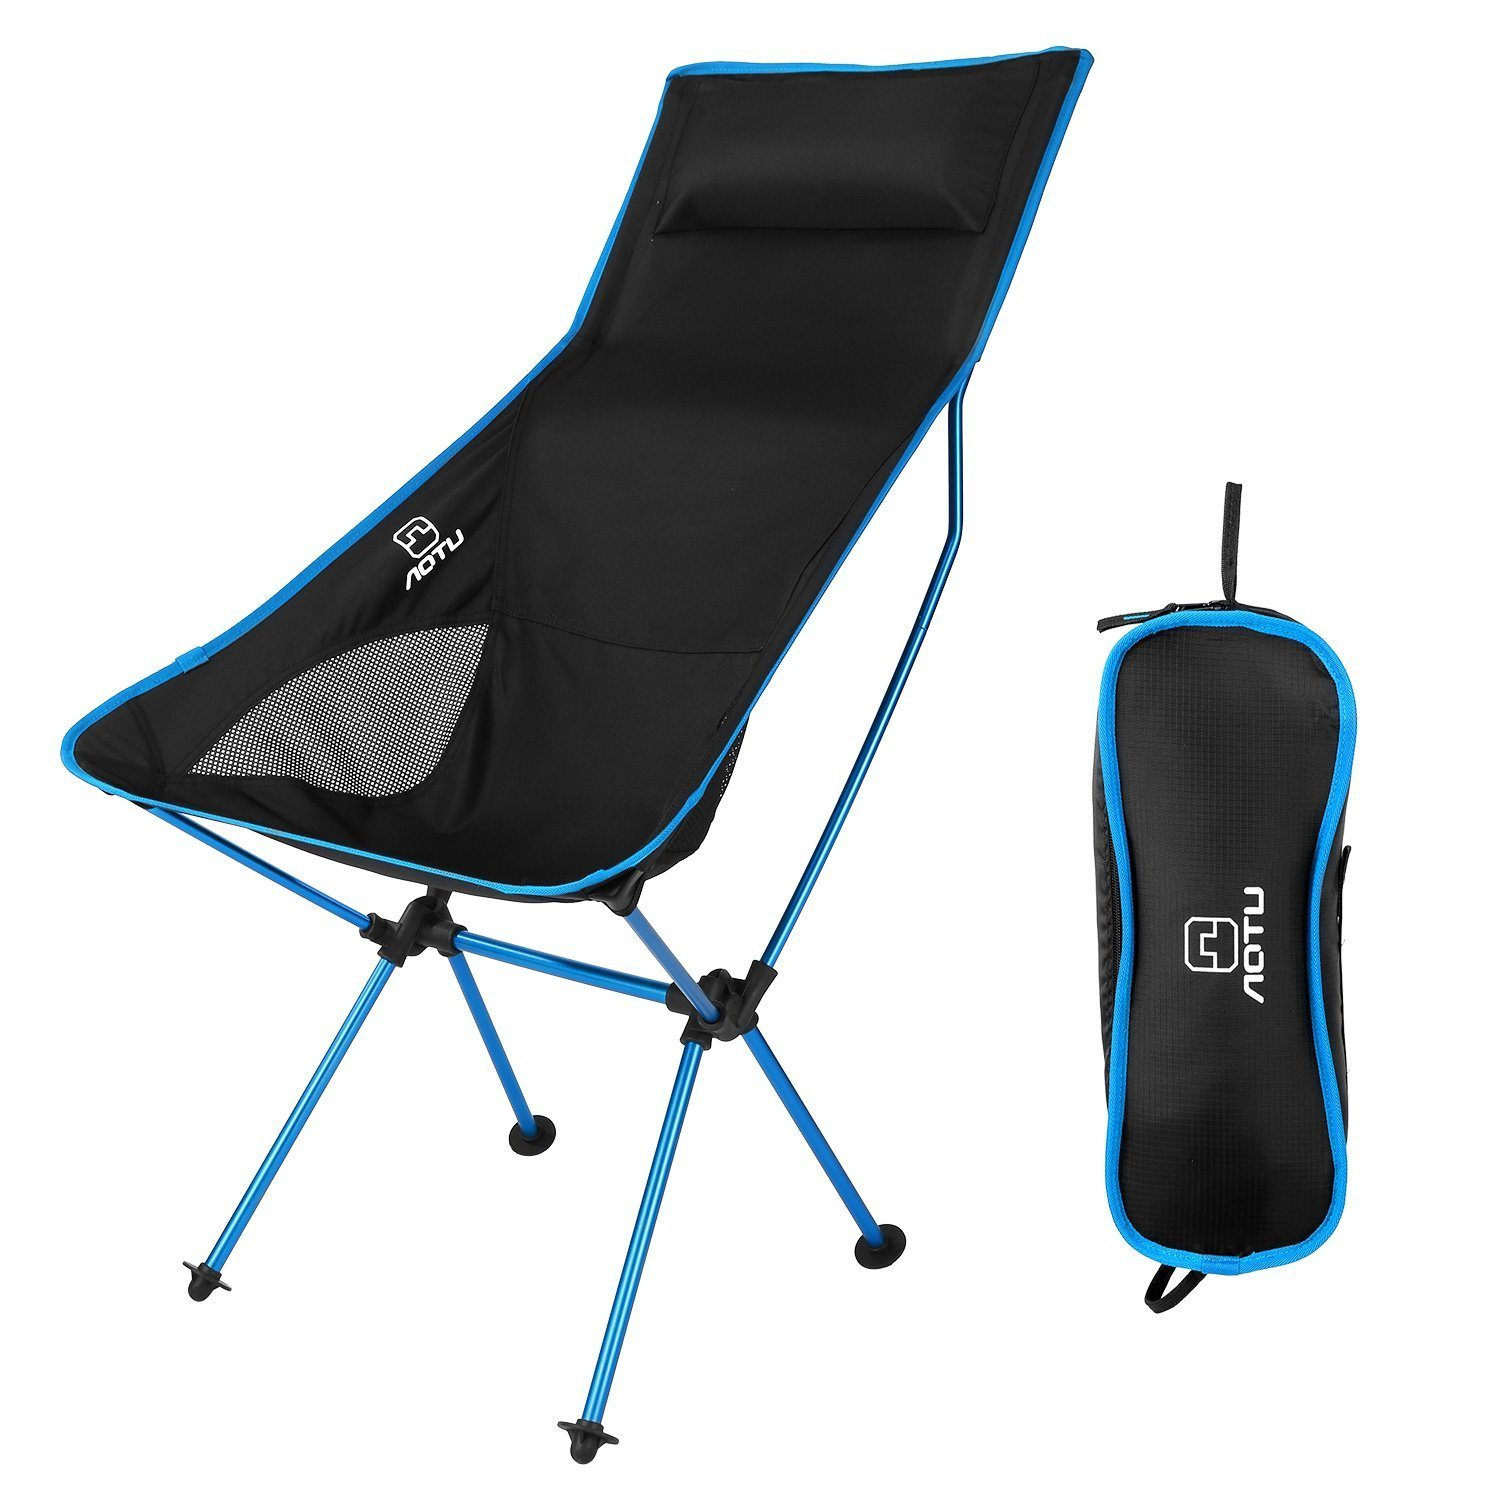 lidl fishing chair mid century modern metal chairs the best camping and loungers telegraph outad with pillow